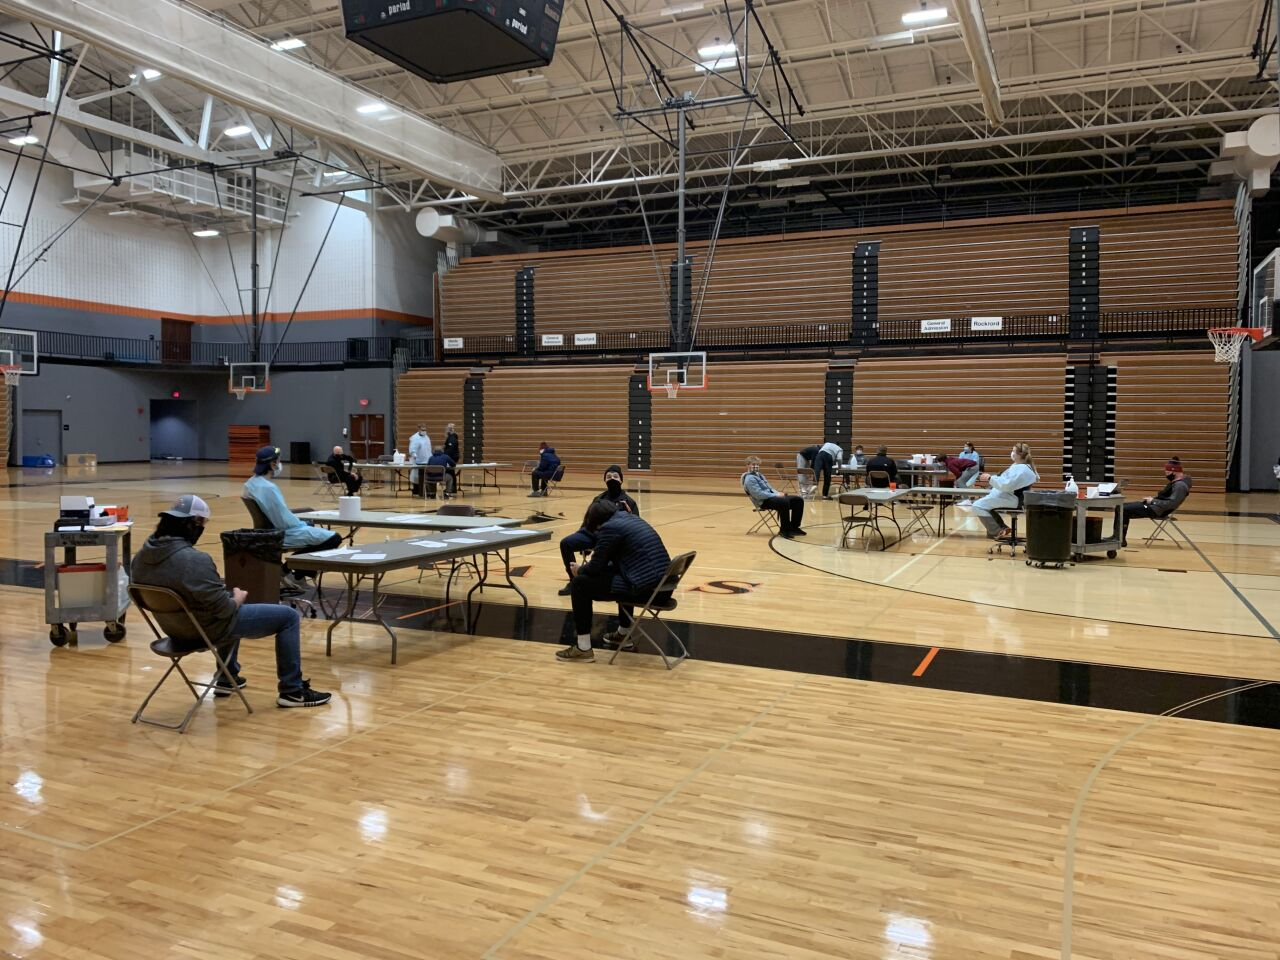 Rockford's gymnasium set up for COVID-19 rapid testing